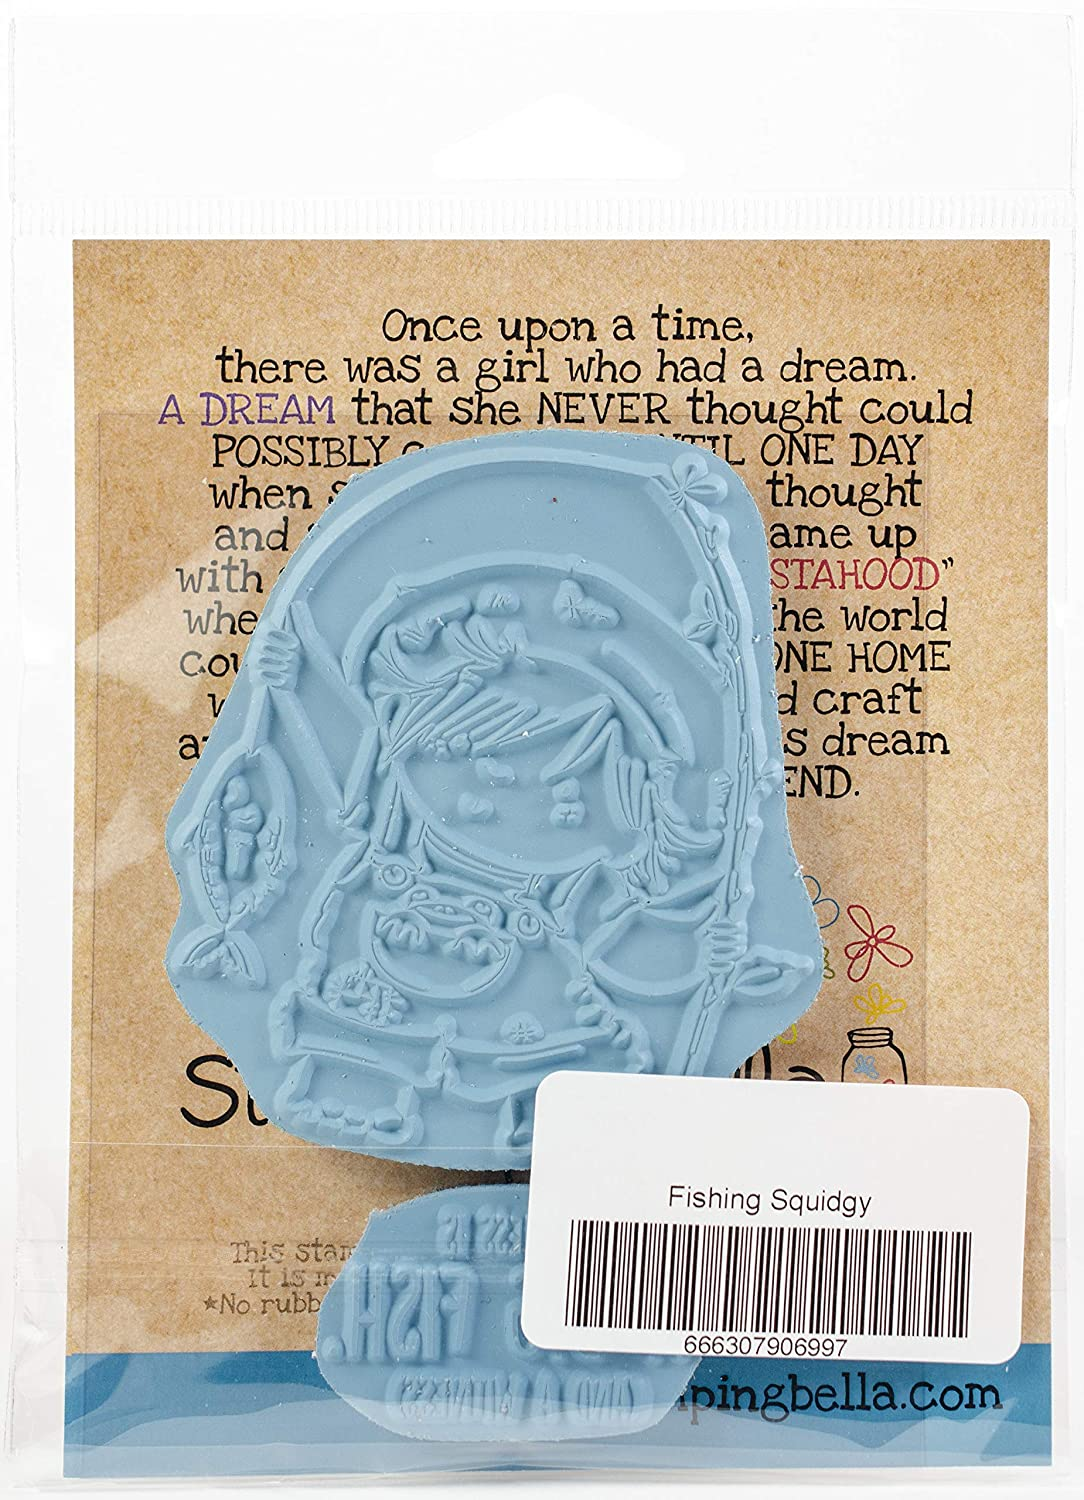 Football Squidgy Stamping Bella EB699 Cling Stamps